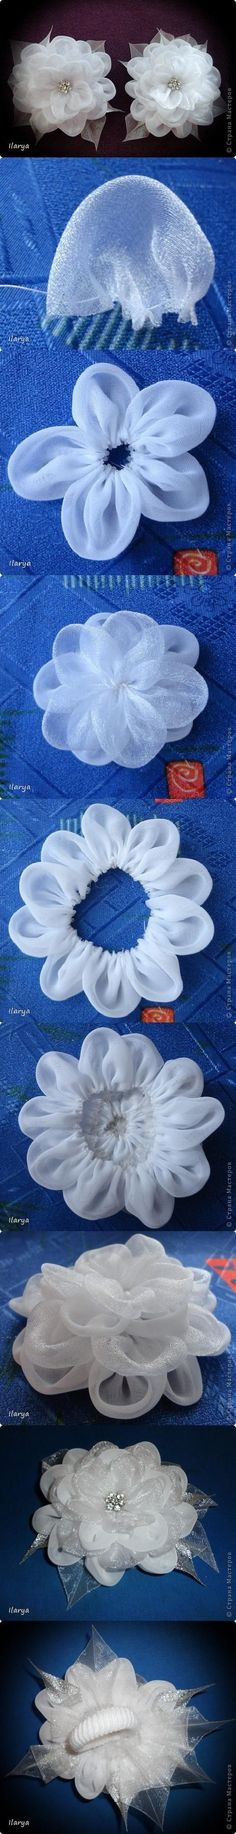 DIY Fabric Lust Flower DIY Projects This would be so cute for a hair pin! Ribbon Art, Fabric Ribbon, Ribbon Crafts, Flower Crafts, Fabric Crafts, Cloth Flowers, Felt Flowers, Diy Flowers, Fabric Flowers